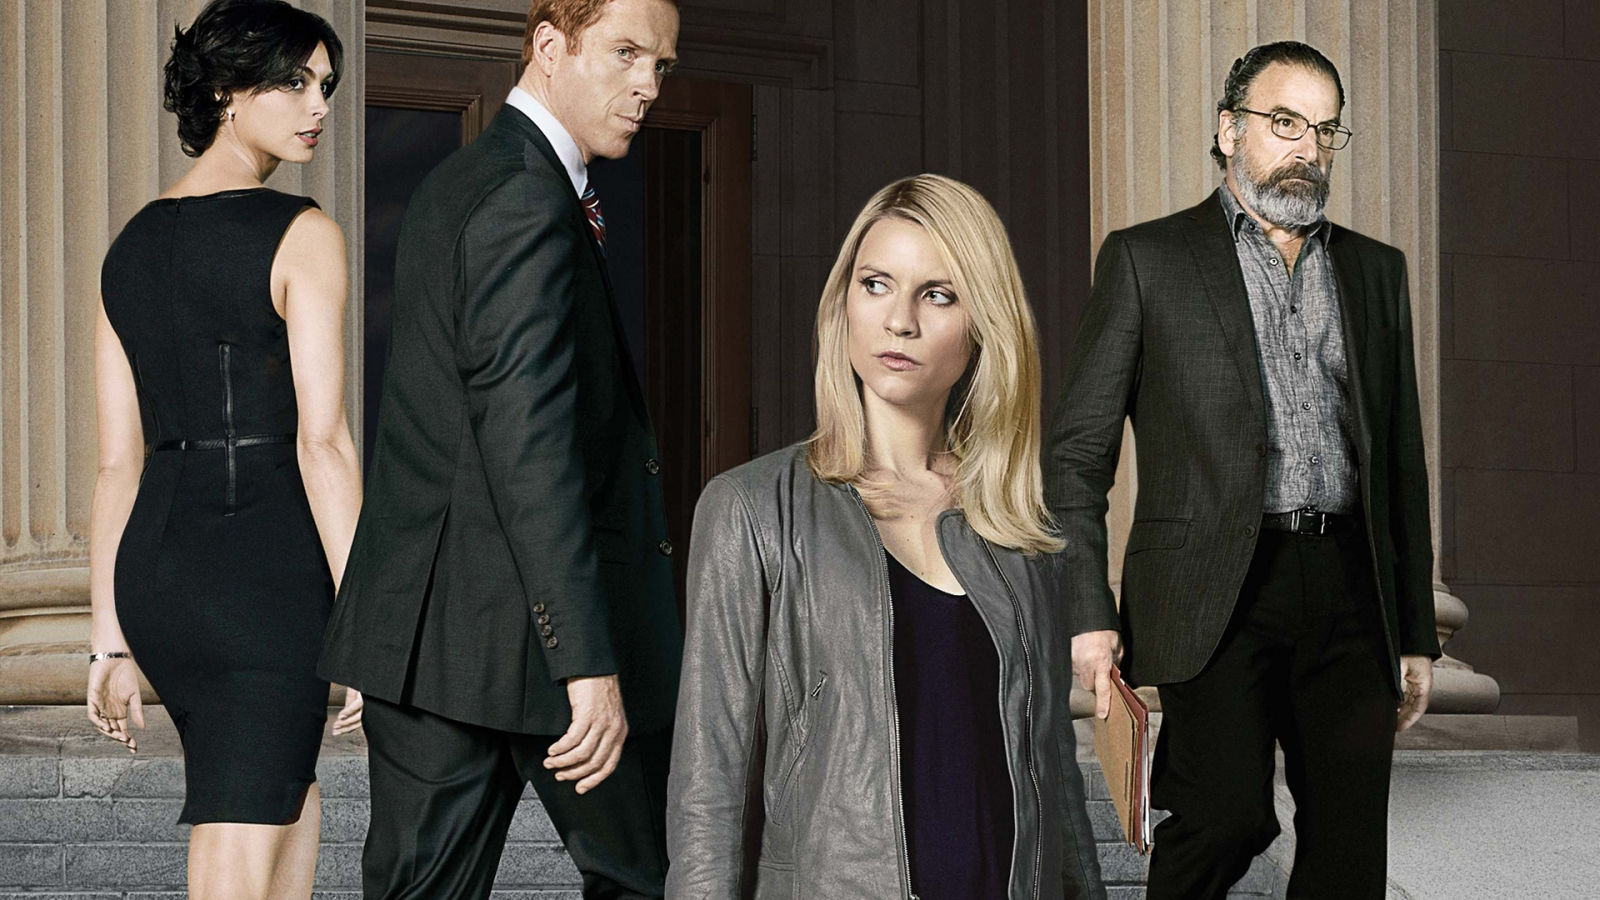 Homeland Cast for 1600 x 900 HDTV resolution